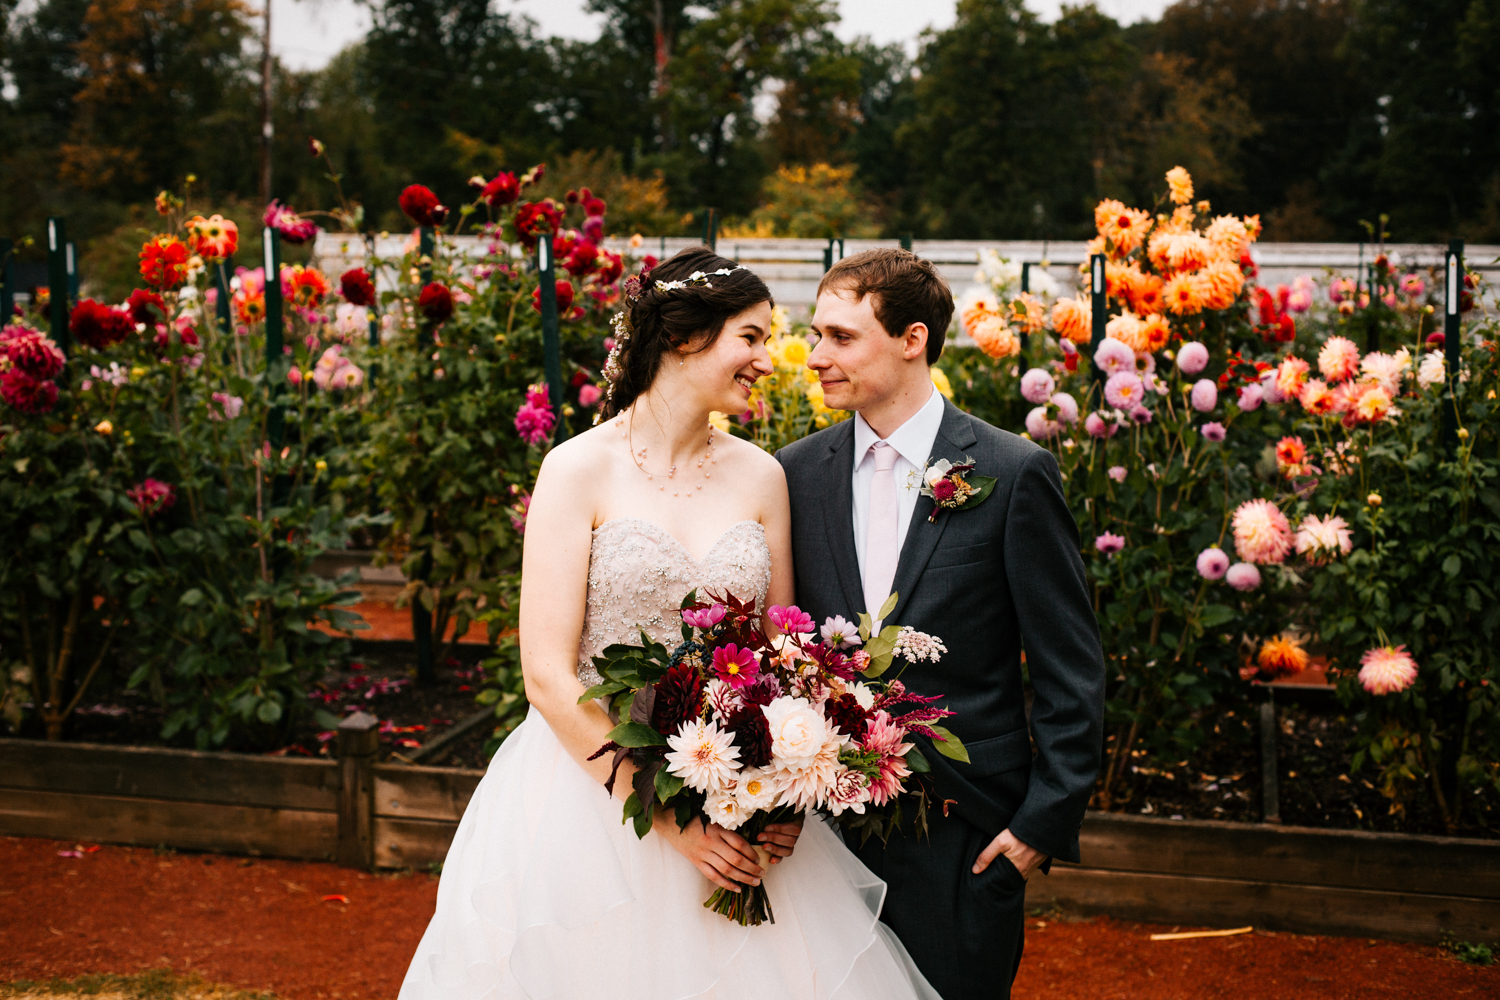 bride-groom-new-england-ri-ma-rose-garden-wedding-fall-autumn-october.jpg